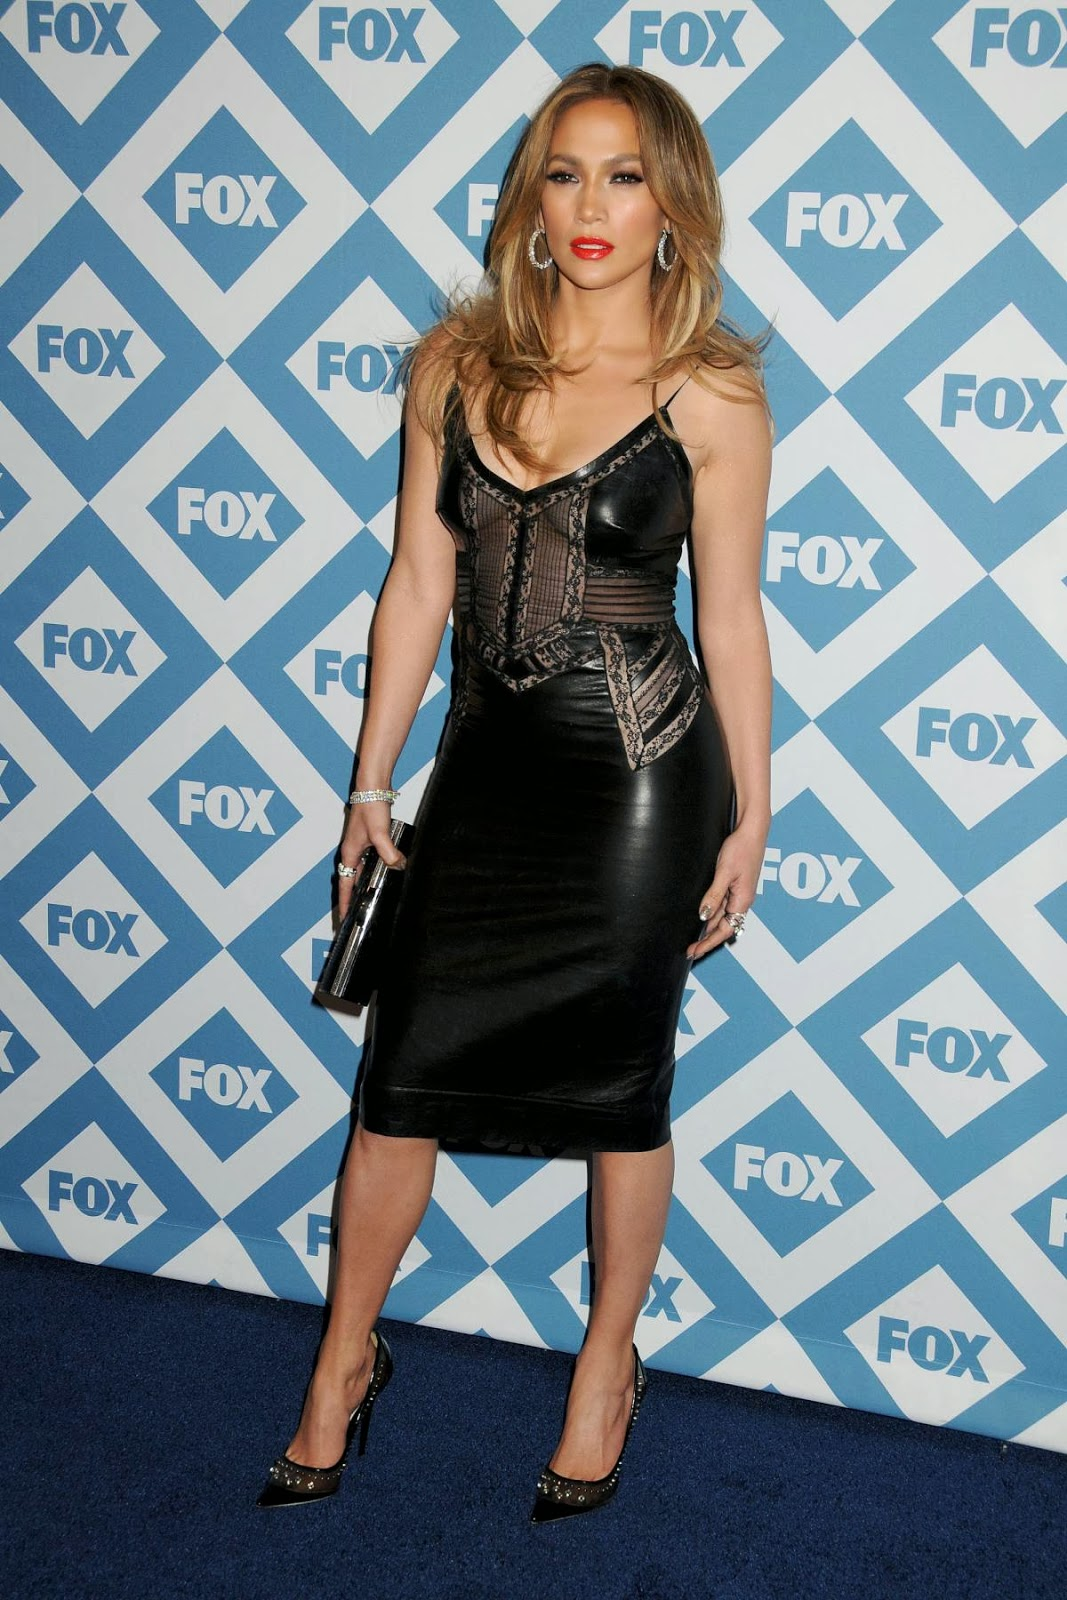 Jennifer Lopez In Sexy Leather Dress For Fox Tca Party